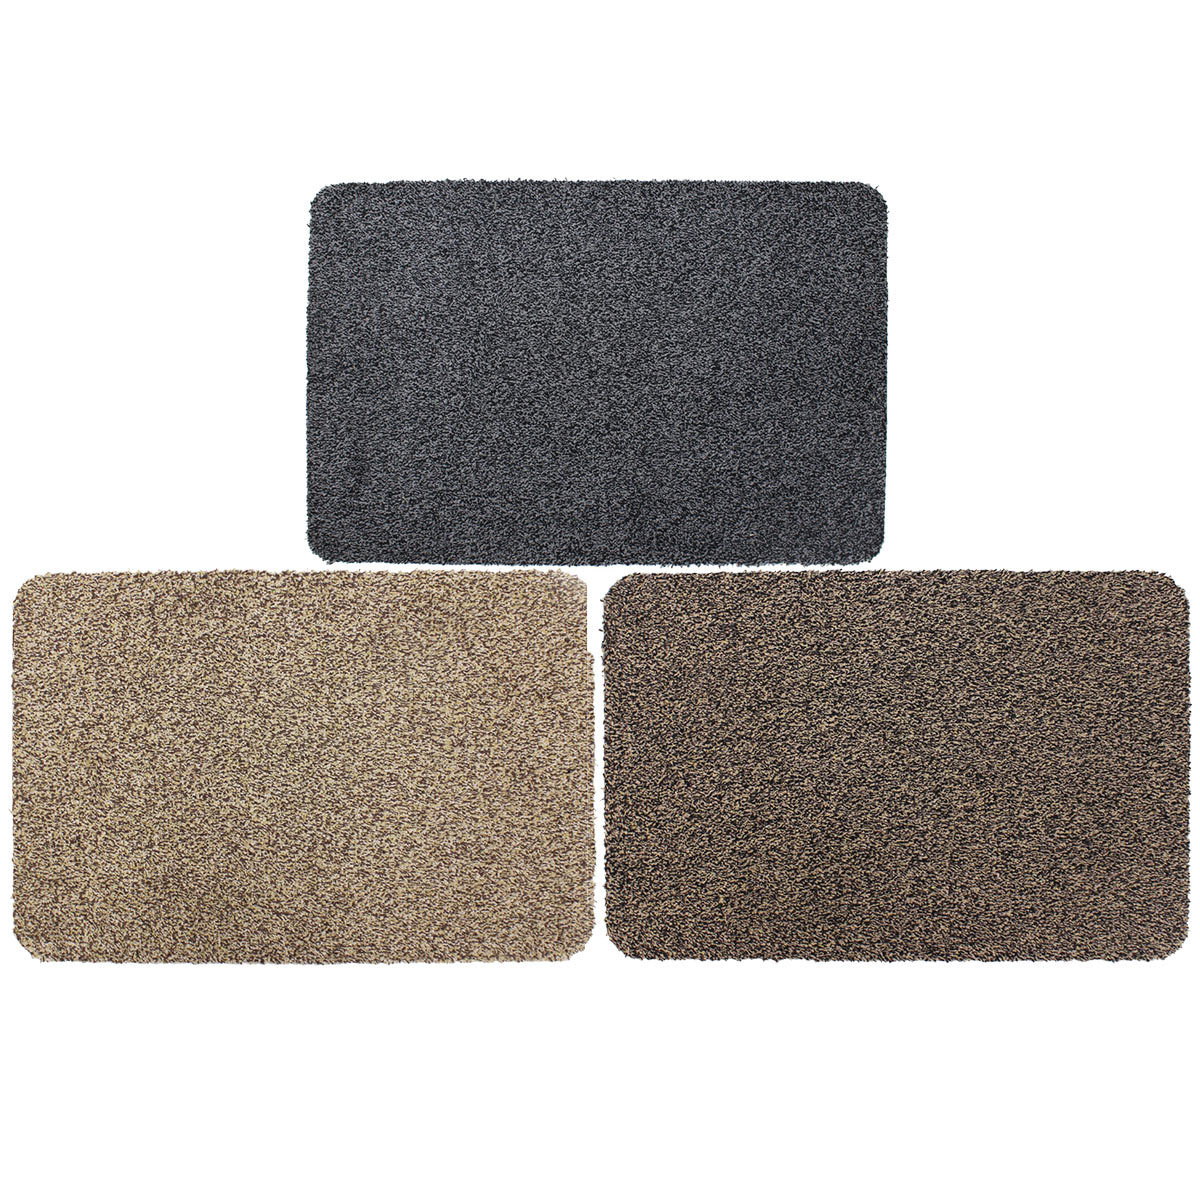 Jvl Tanami Barrier Door Mat In 3 Colours Costco Uk